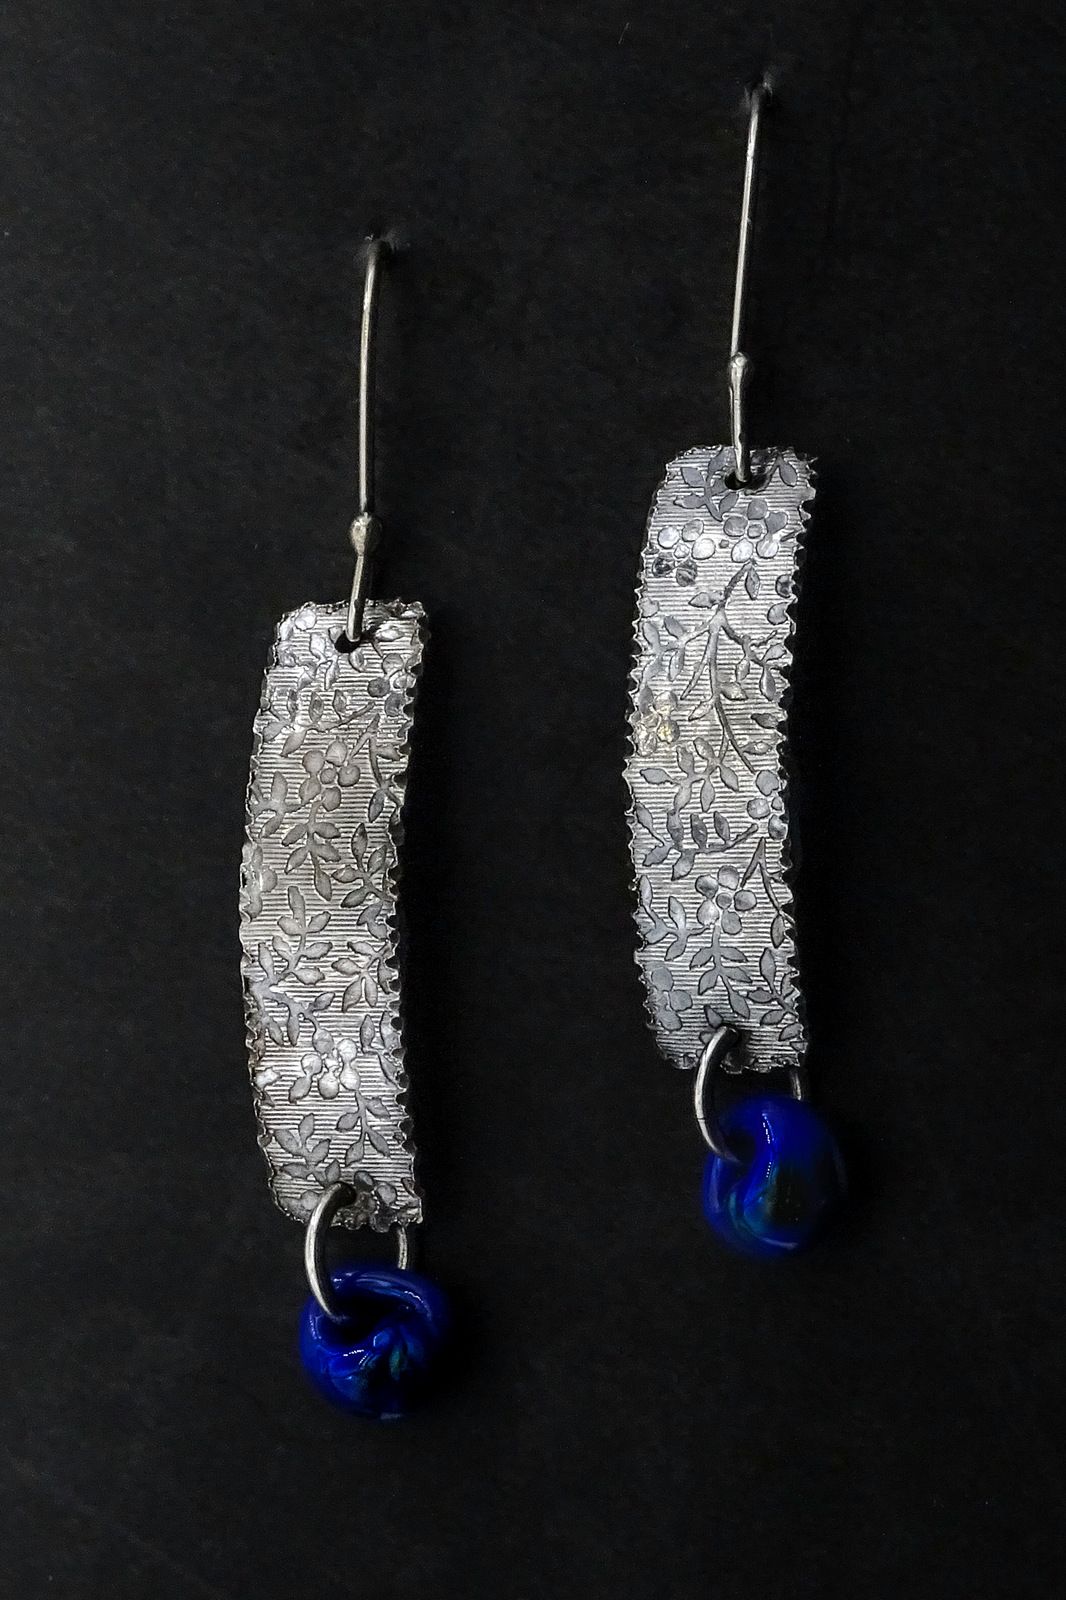 BLUE STONE ARC EARRINGS,  Silver Ear Wires,  1.75 x .5 inches - 2.5 inches drop length